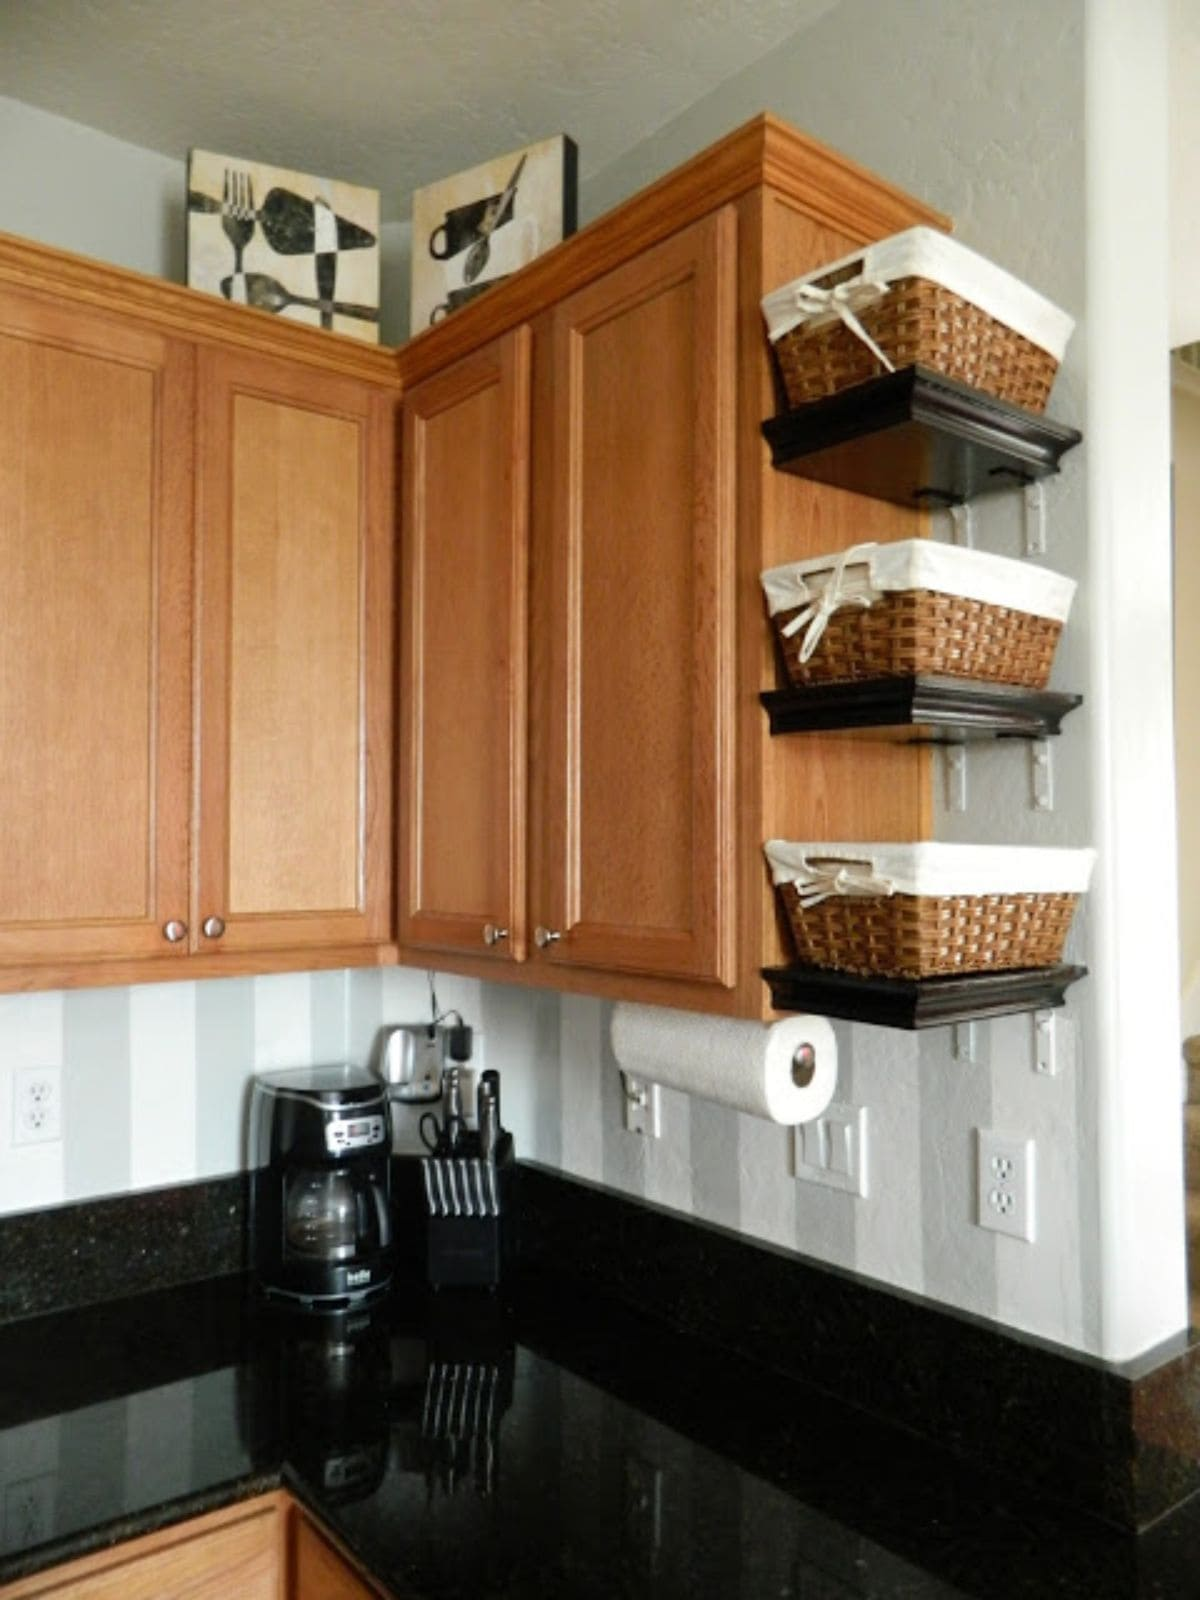 THe corner of a kitchen, showing light wood untits. On the edge of the unit 3 shelves have been fixed and wicker baskets sit on each of these shelves.